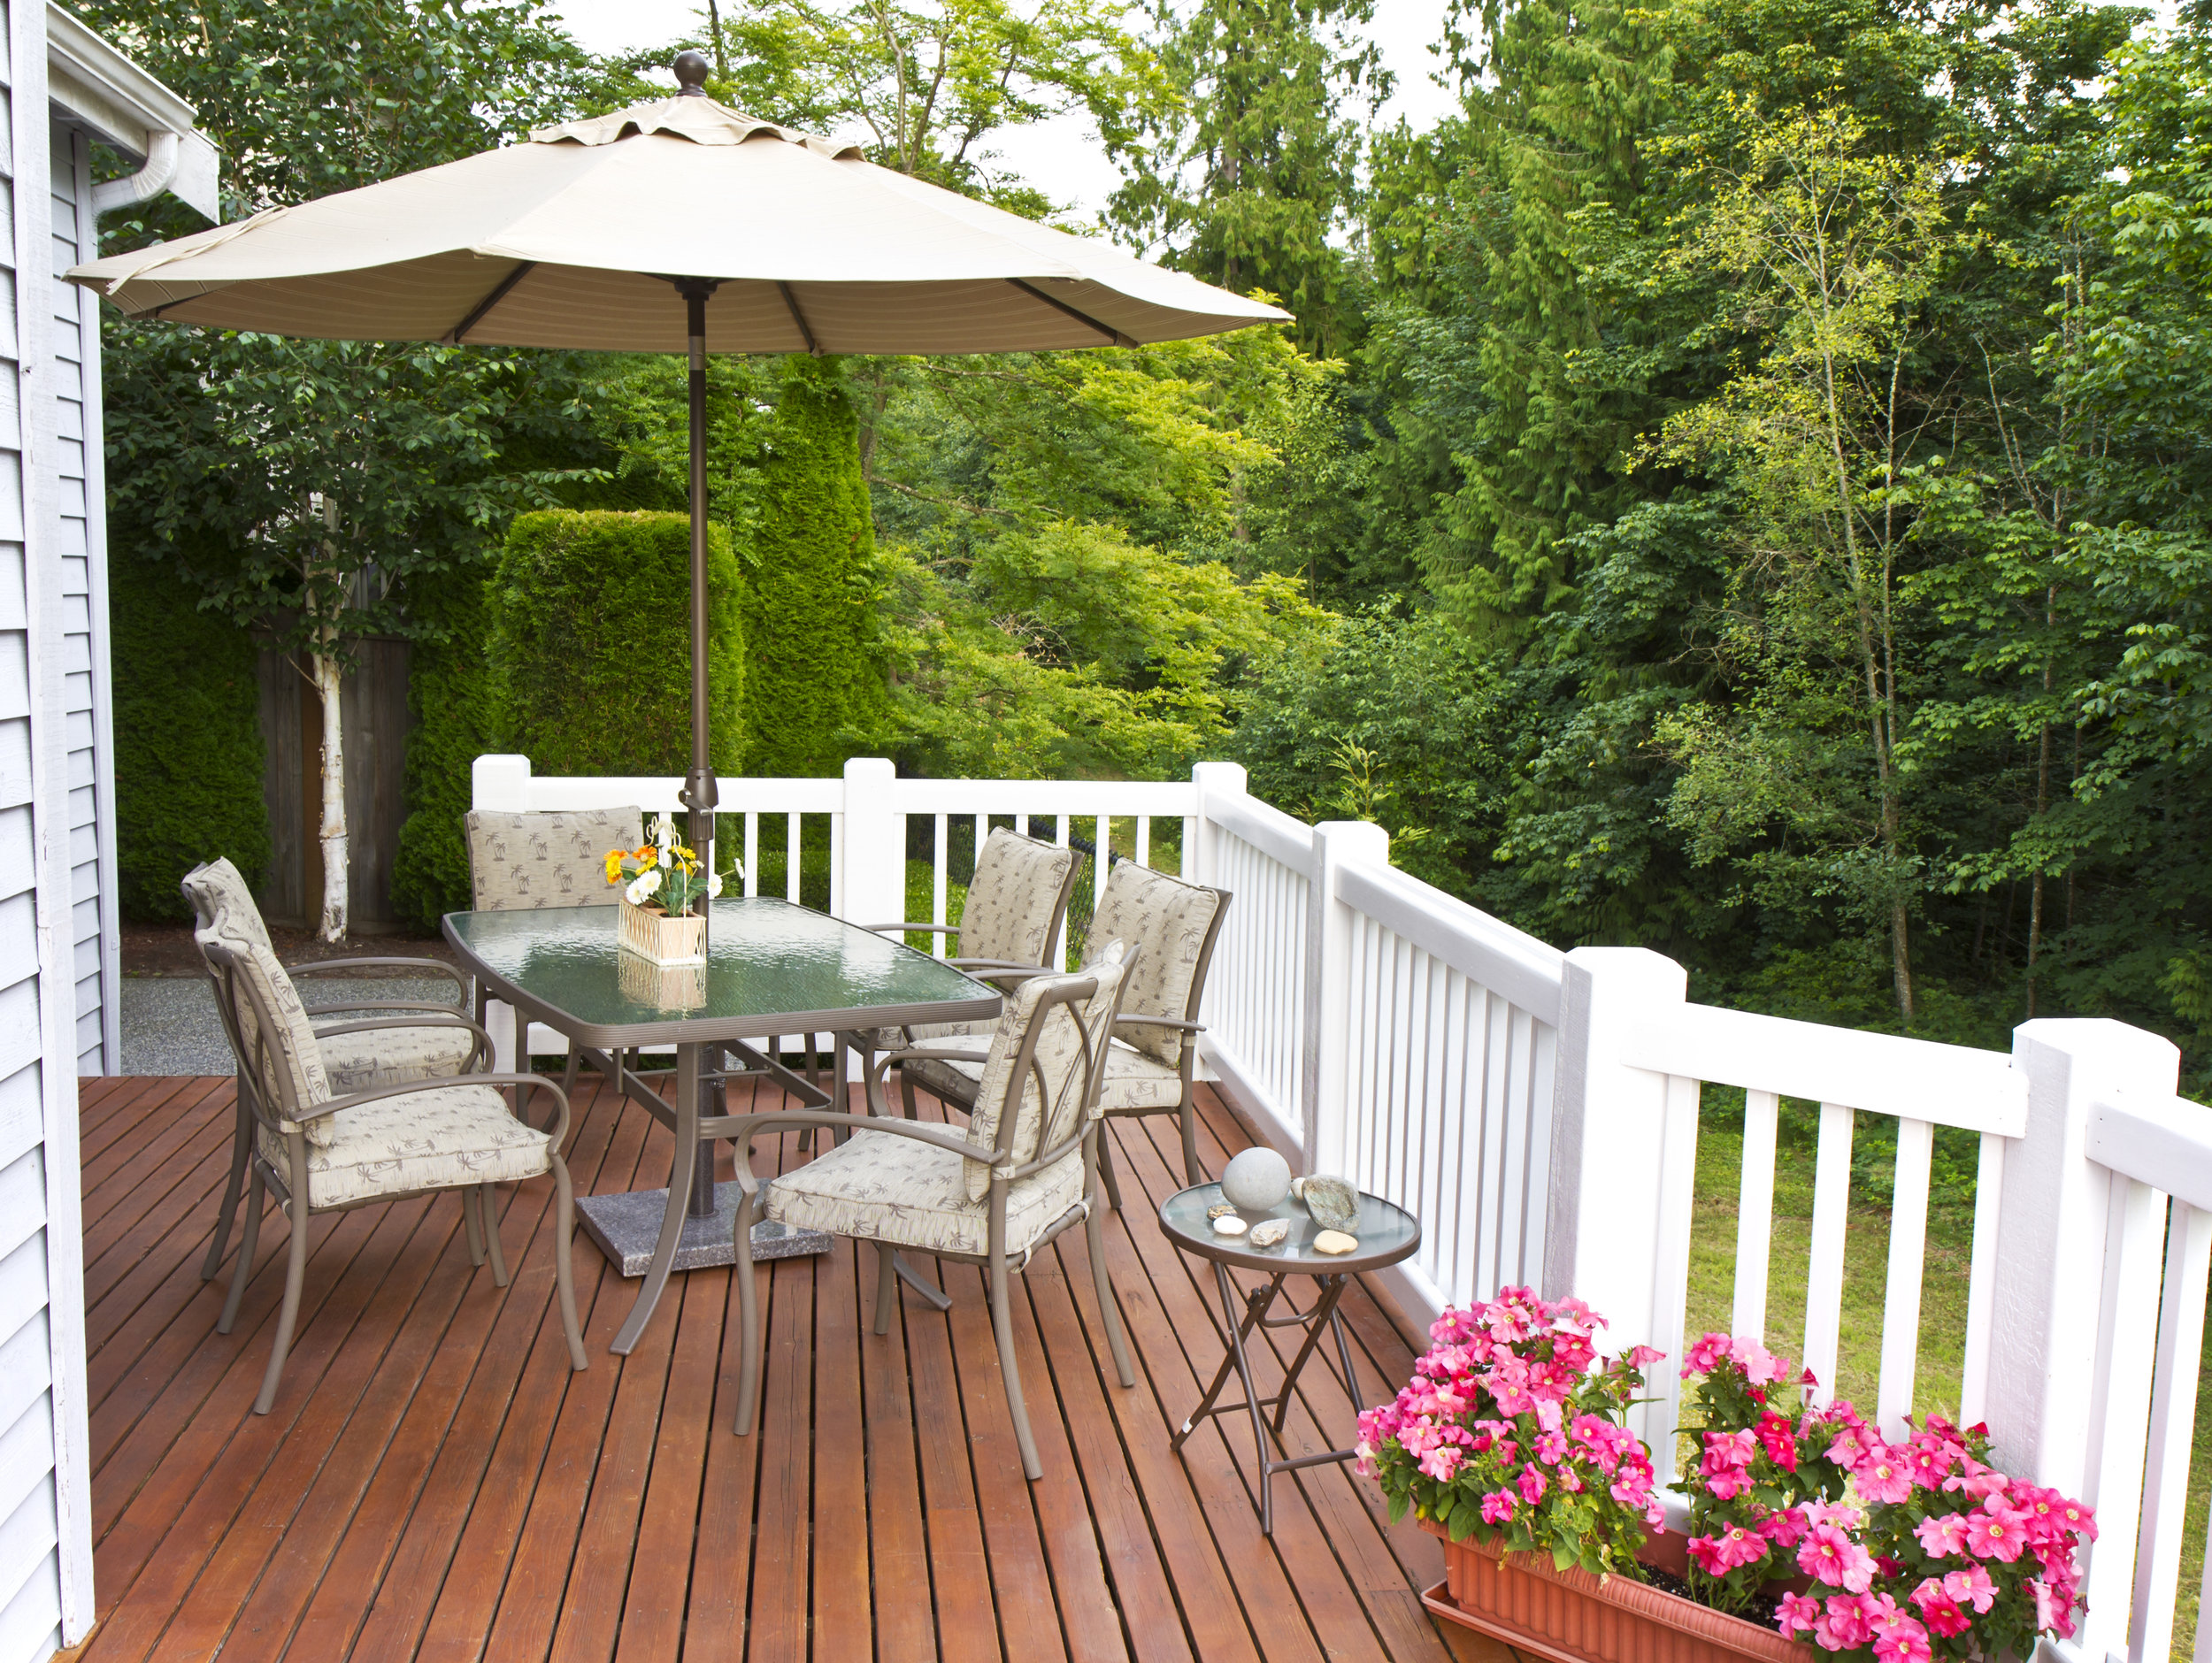 DECKS, PORCHES& SUNROOMS - We live in one of the most beautiful areas of the country. Adding a deck, porch, and/or sunroom will extend your home's living space and increase its overall value. There are many options that will make it easier for you, your family, friends, and pets to relax, enjoy the sun, and get closer to nature.